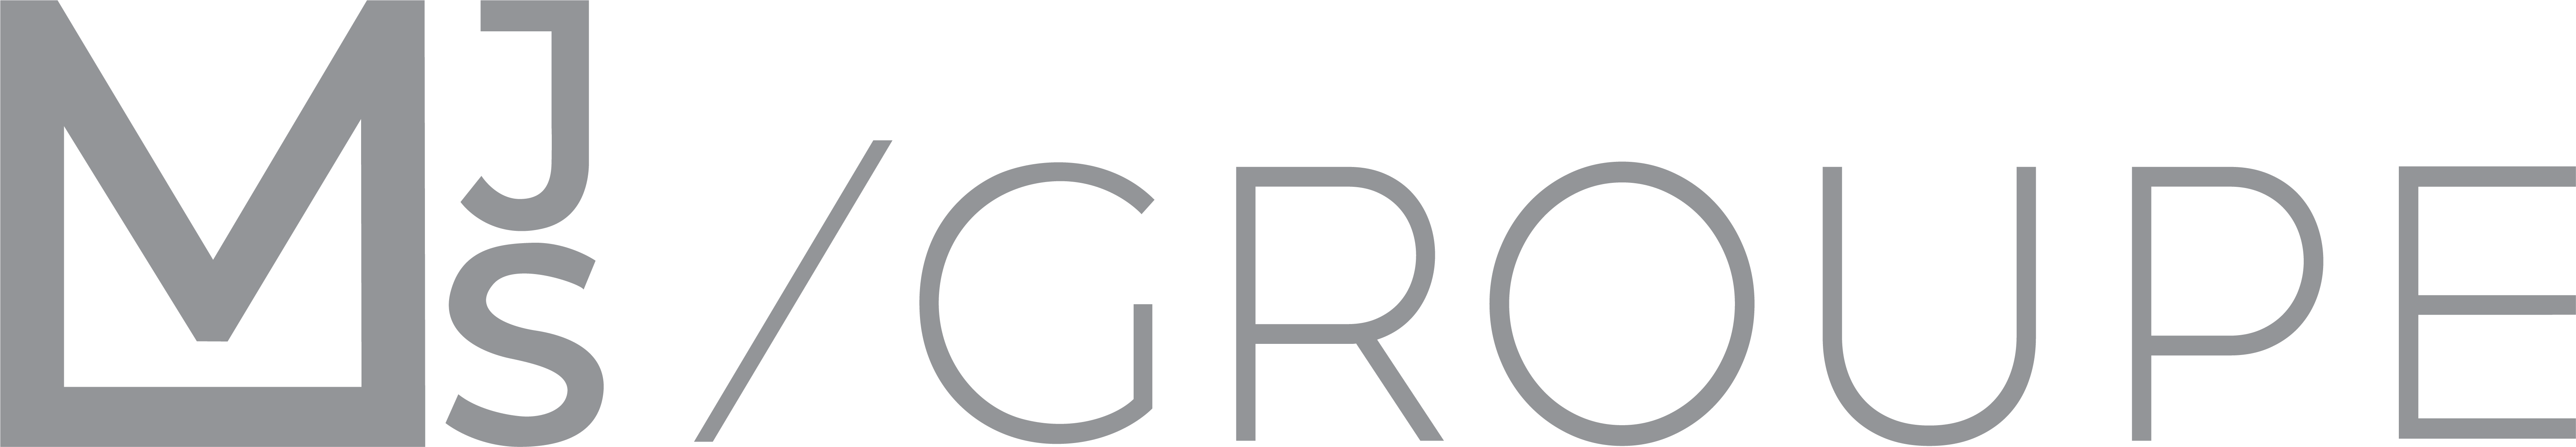 The MJS Groupe Logo